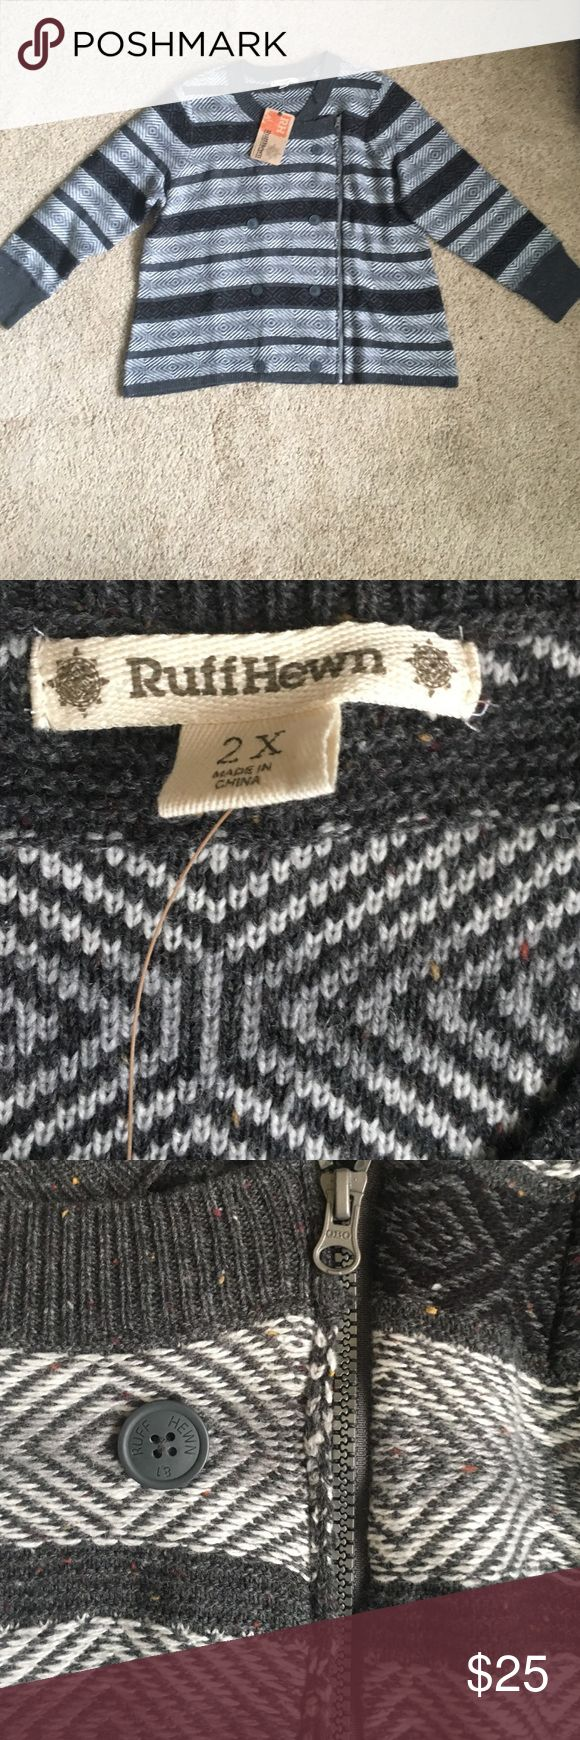 Flash Sale! Cute zip up  accent sweater New with tags. Perfect for the holidays and really warm for the winter. Brand is RuffenHewn. Allergy Alert * I have 2 cats and am an occasional smoker*. Tops Sweatshirts & Hoodies